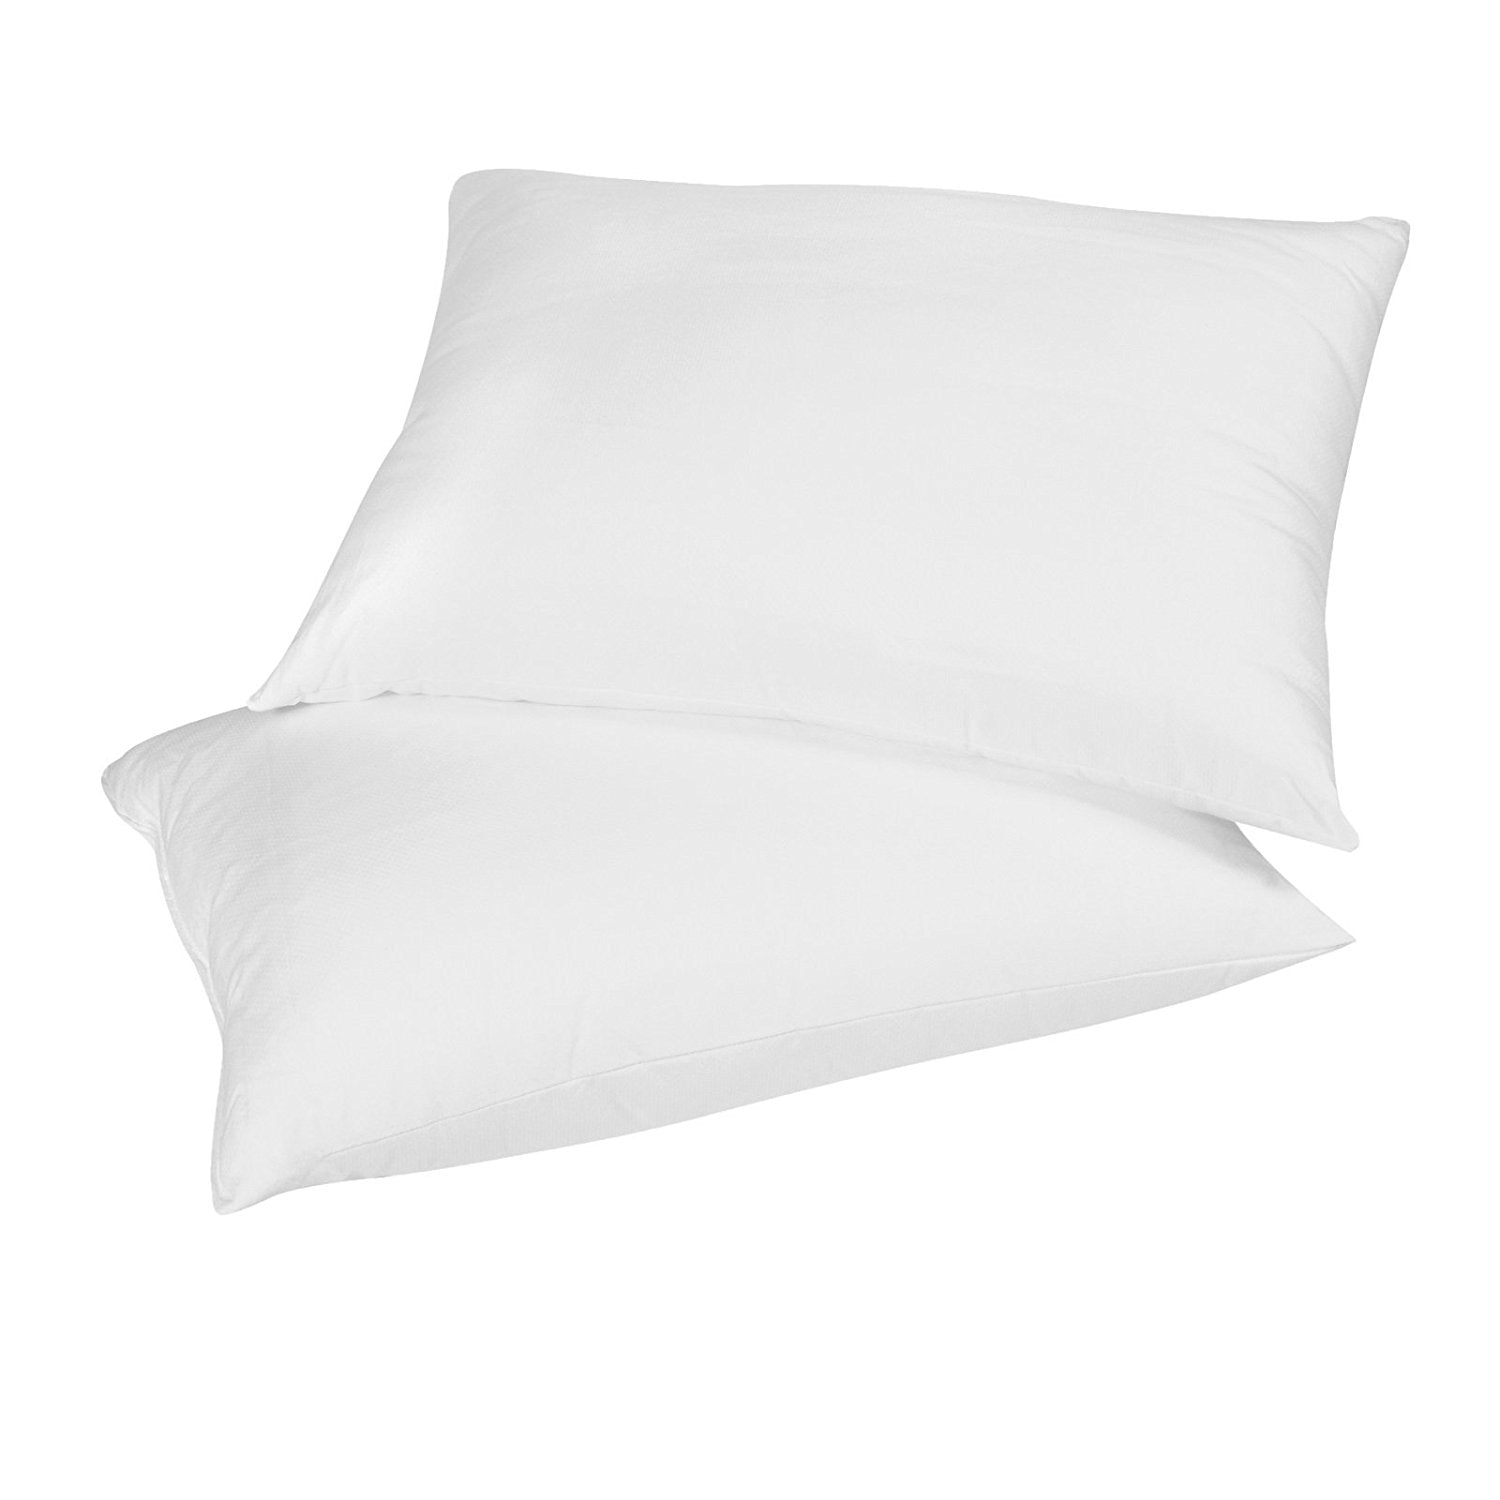 Empyrean Premium Wholesale Pillowcases Packs